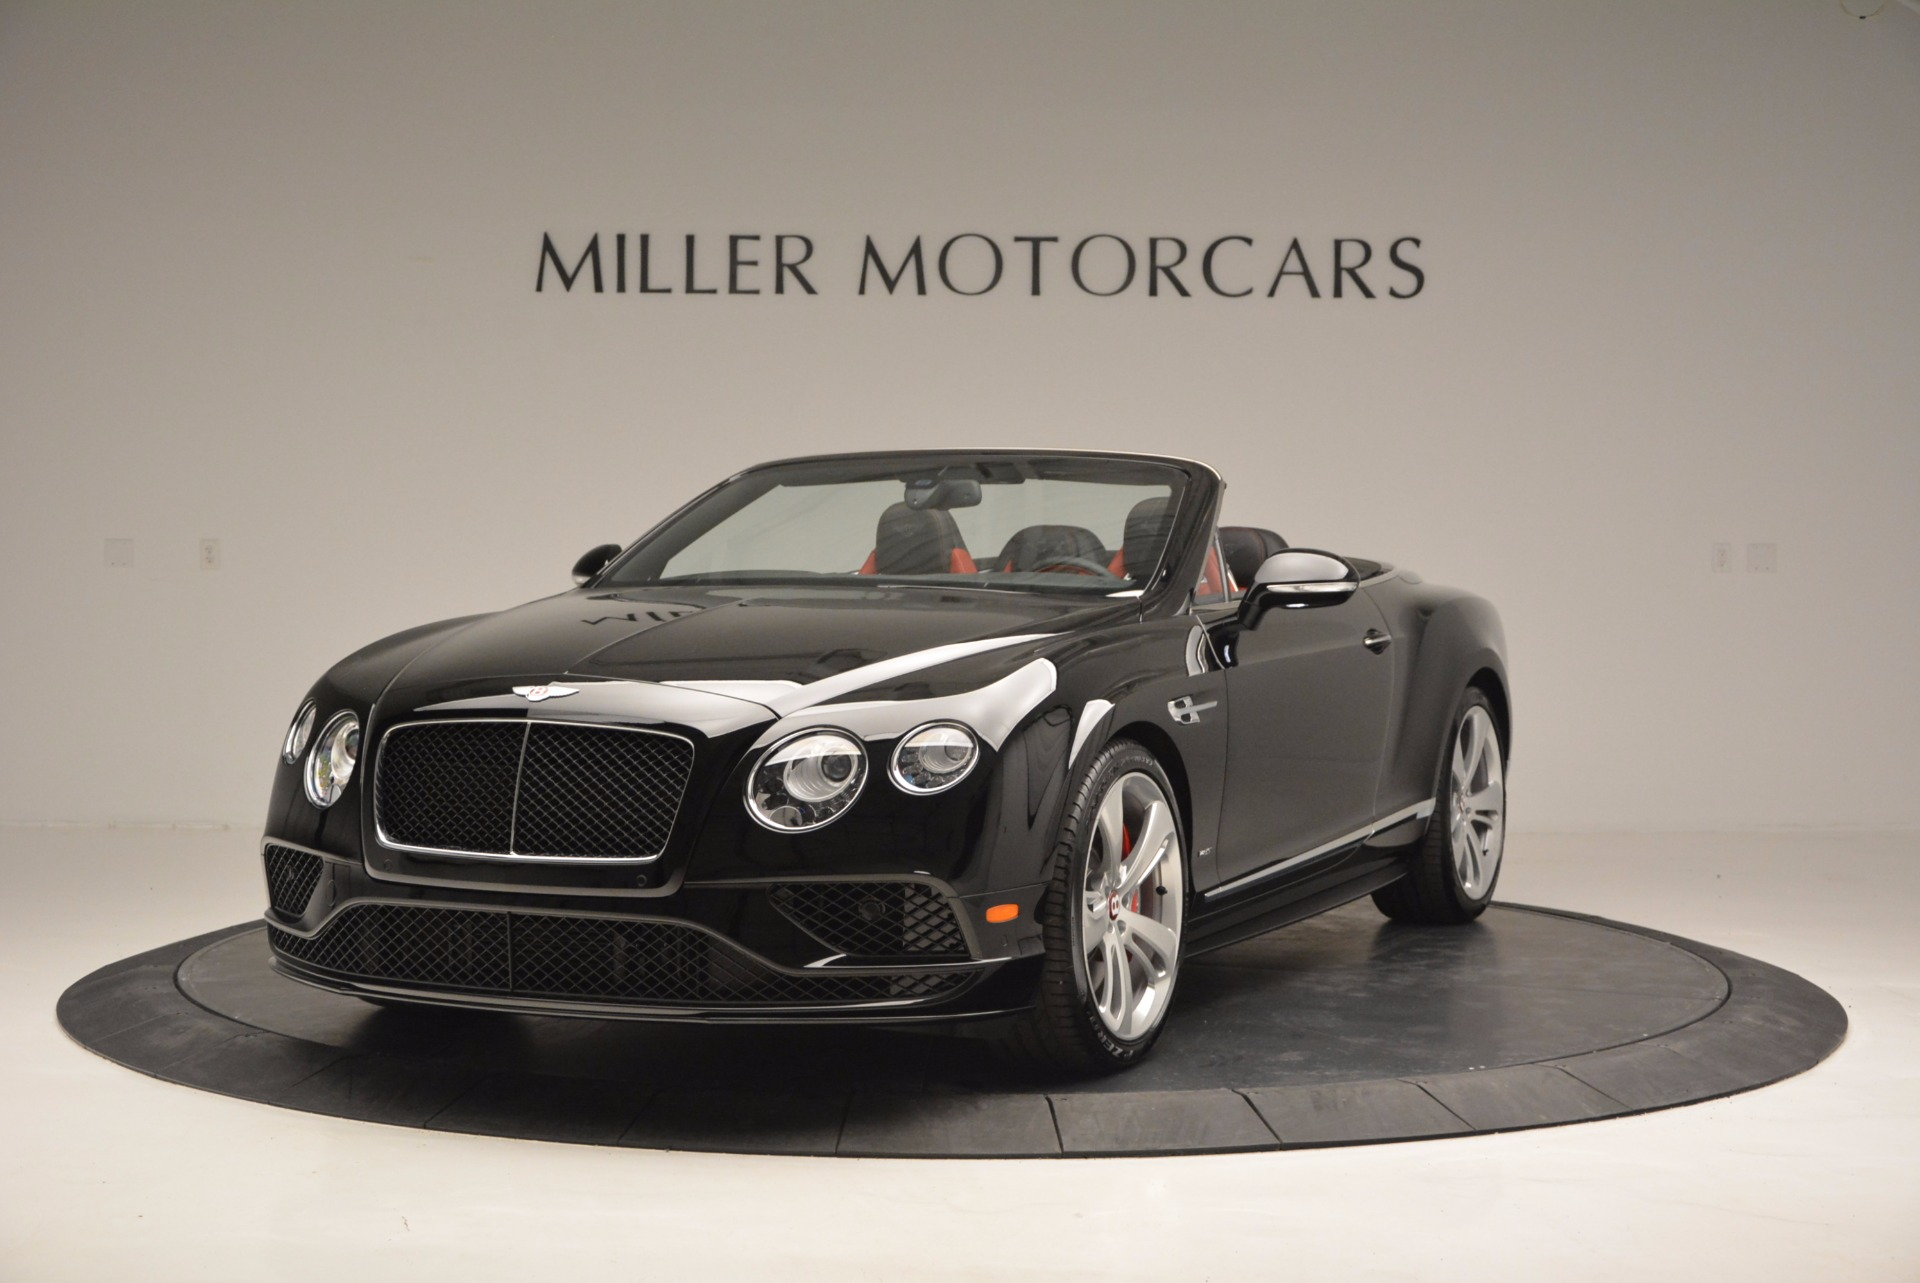 New 2017 Bentley Continental GT V8 S For Sale In Westport, CT 759_main